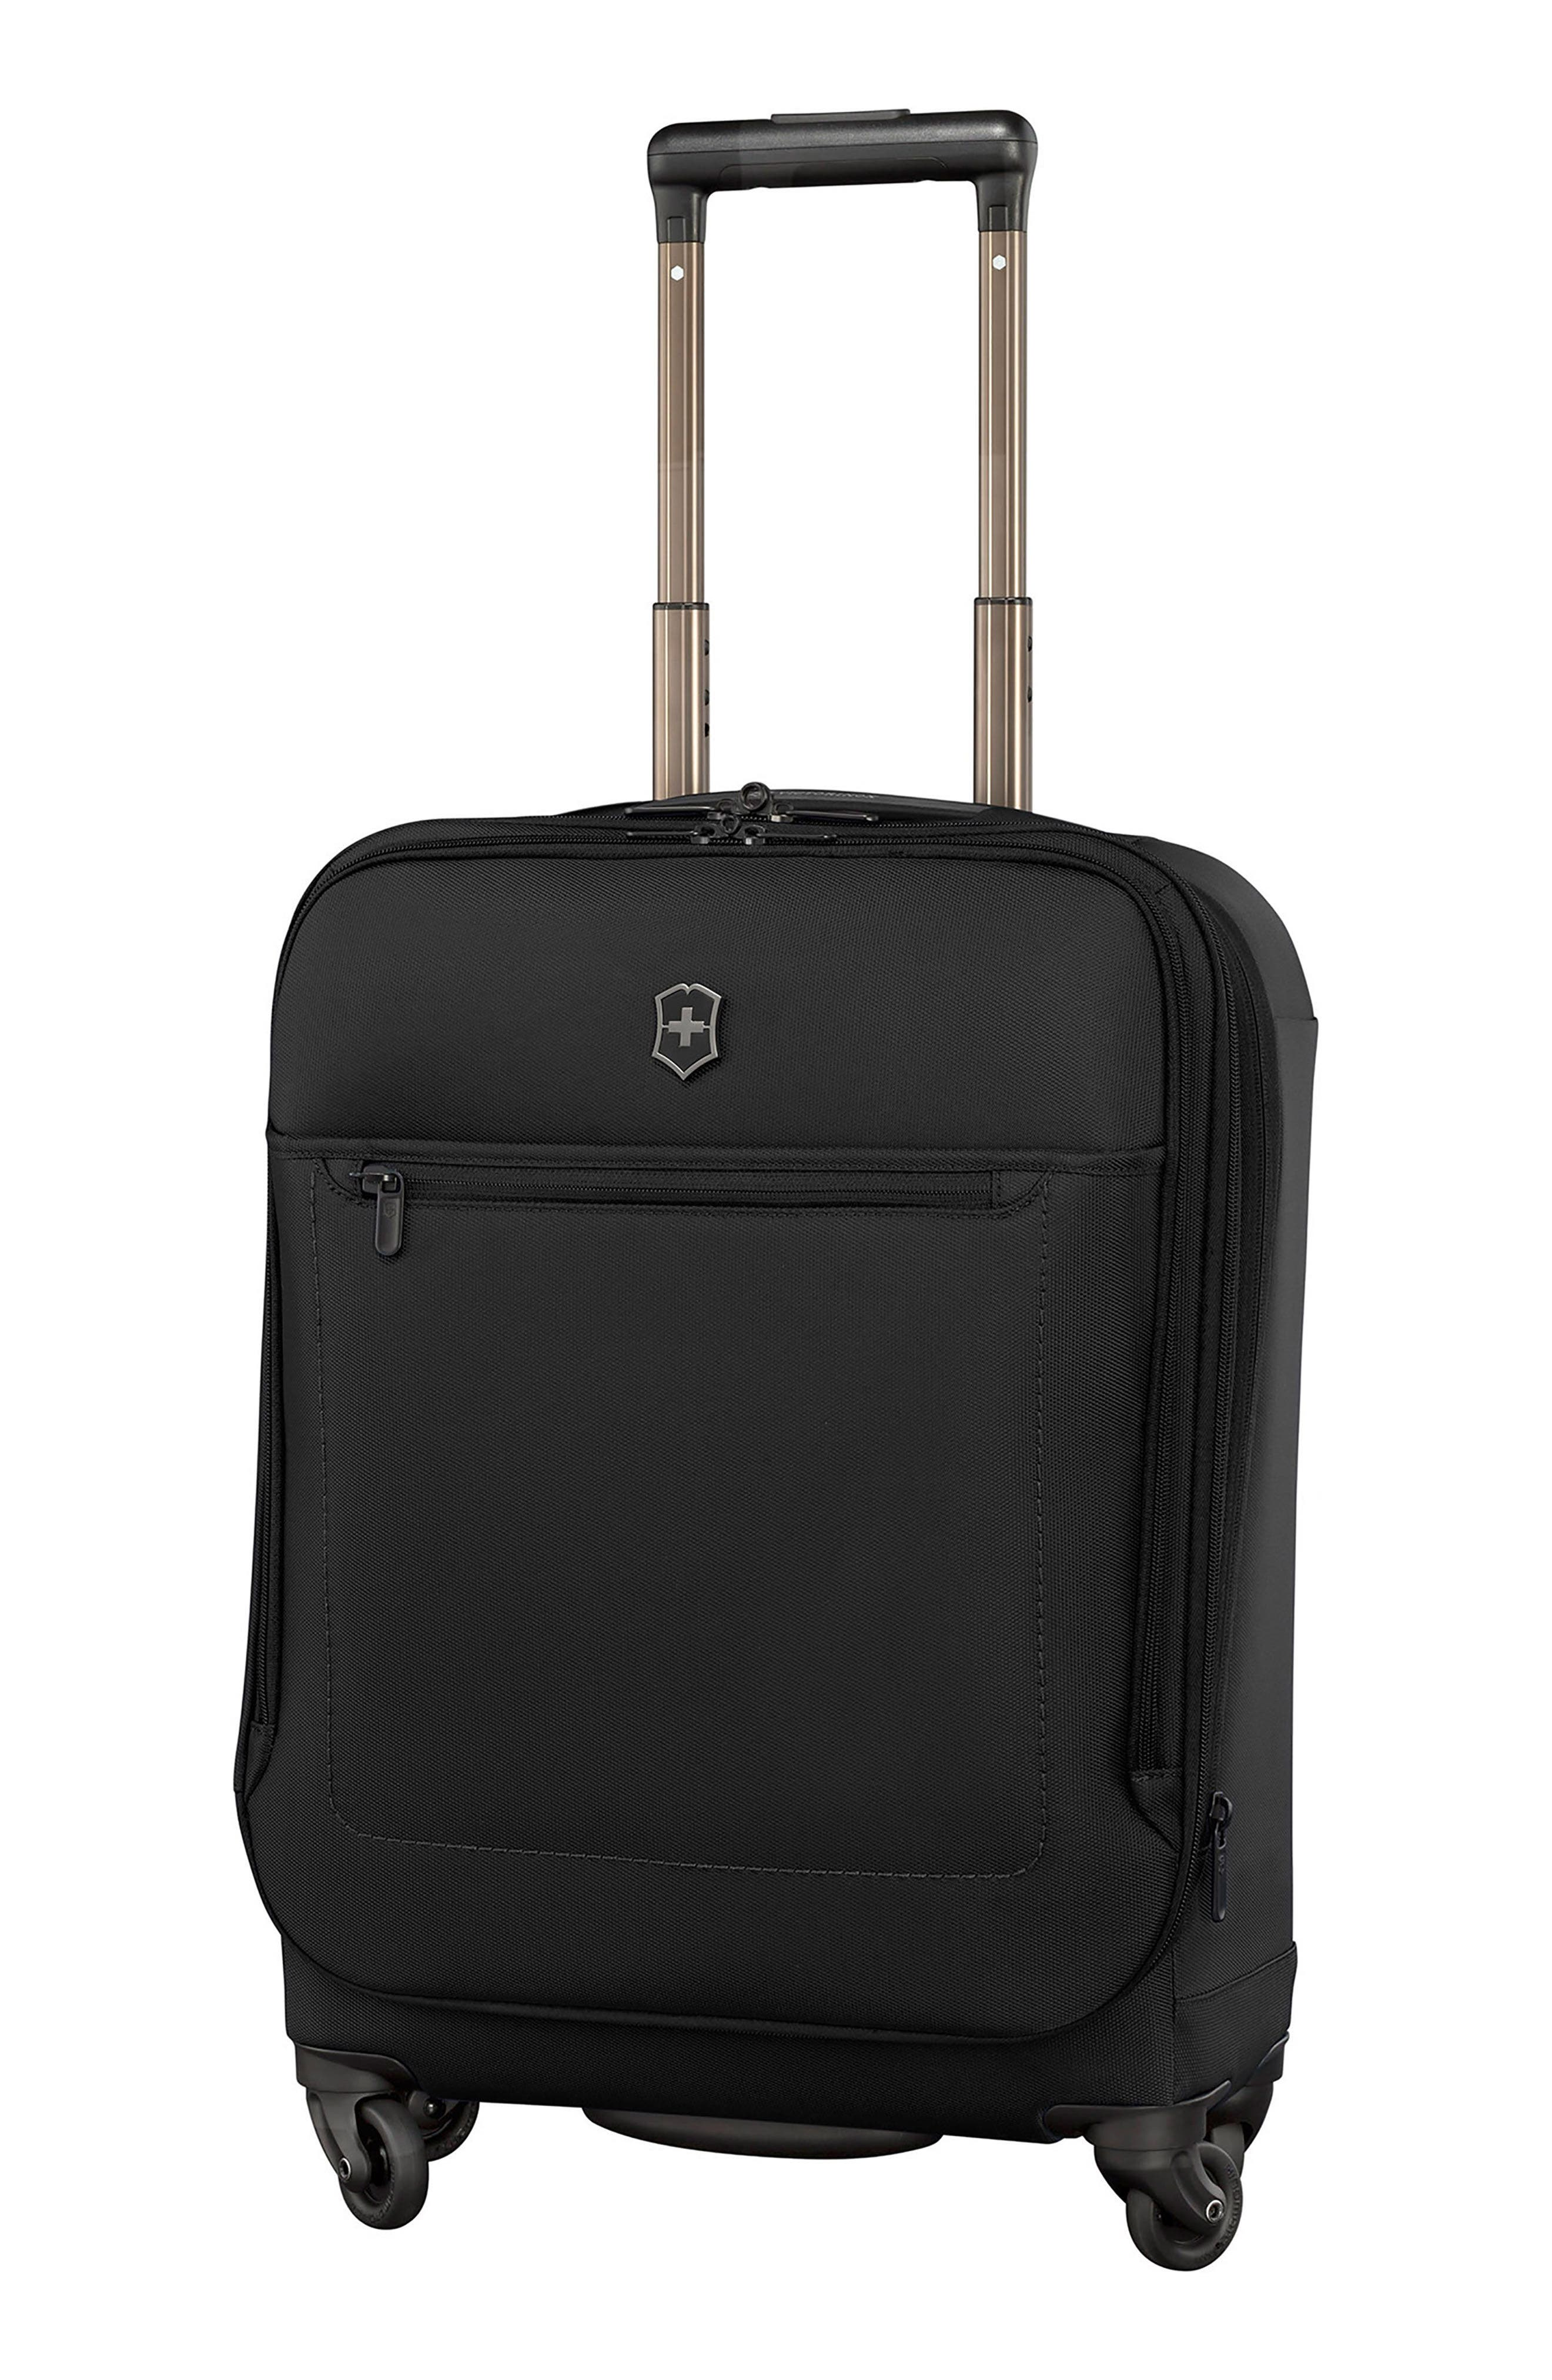 Alternate Image 1 Selected - Victorinox Swiss Army® Avolve 3.0 Global 22 Inch Wheeled Carry-On